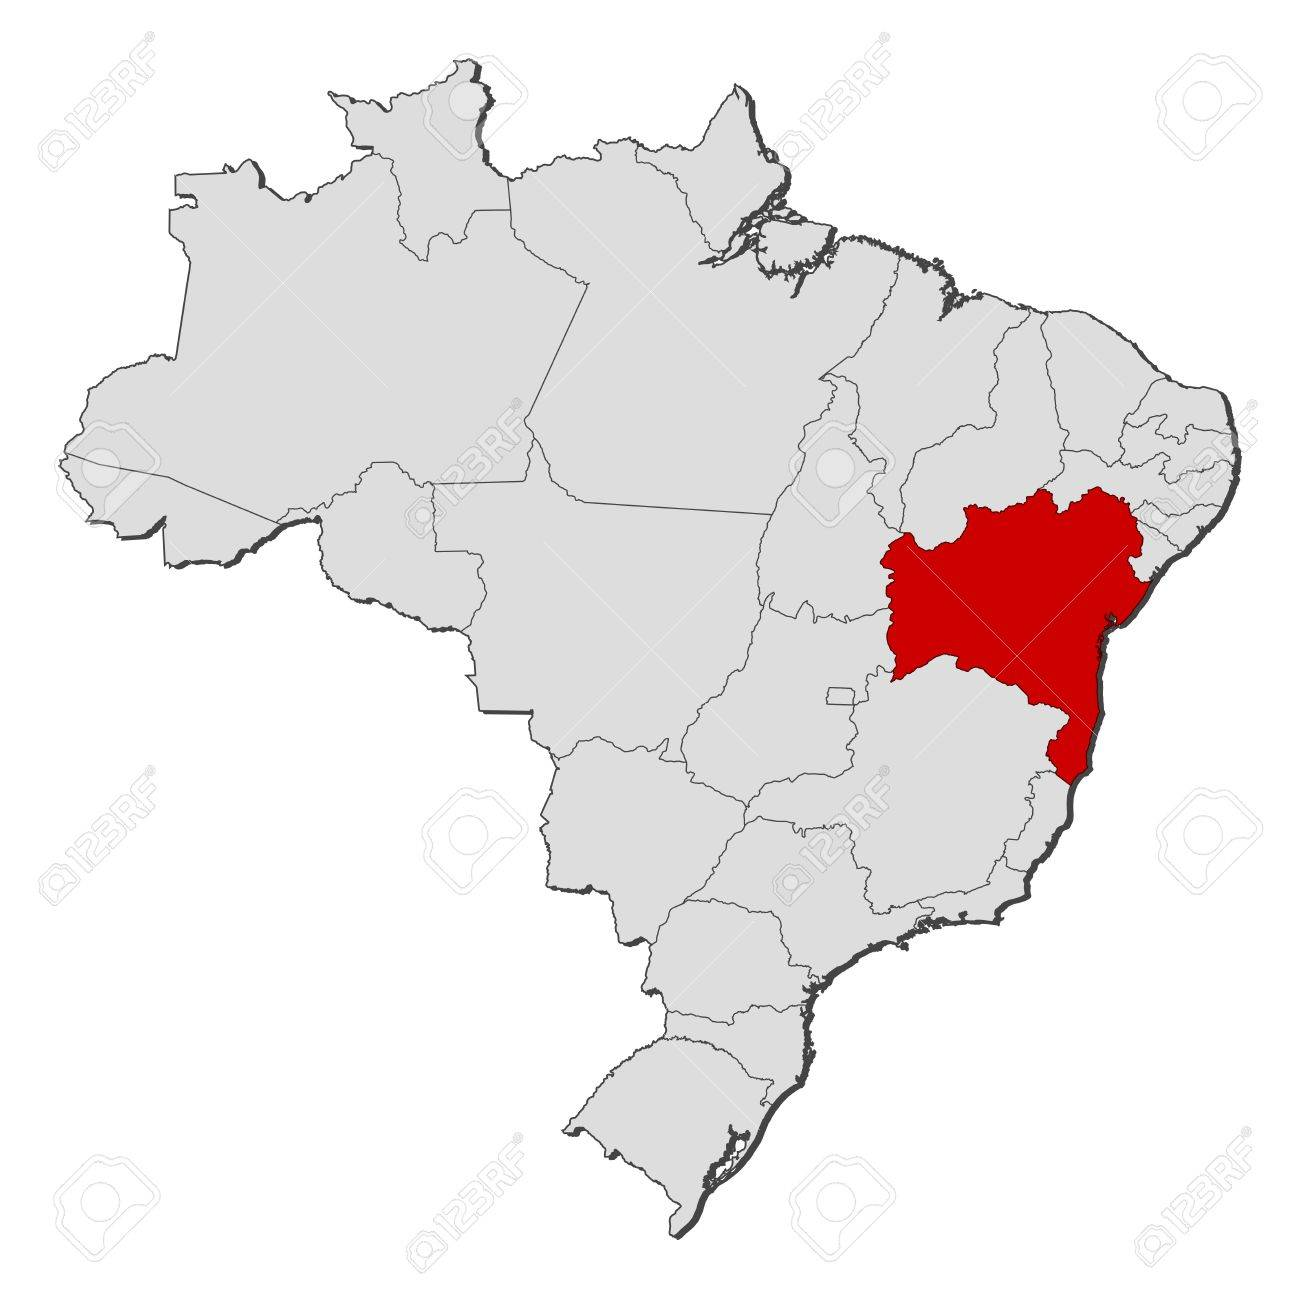 Political Map Of Brazil With The Several States Where Bahia Is - Political map of brazil